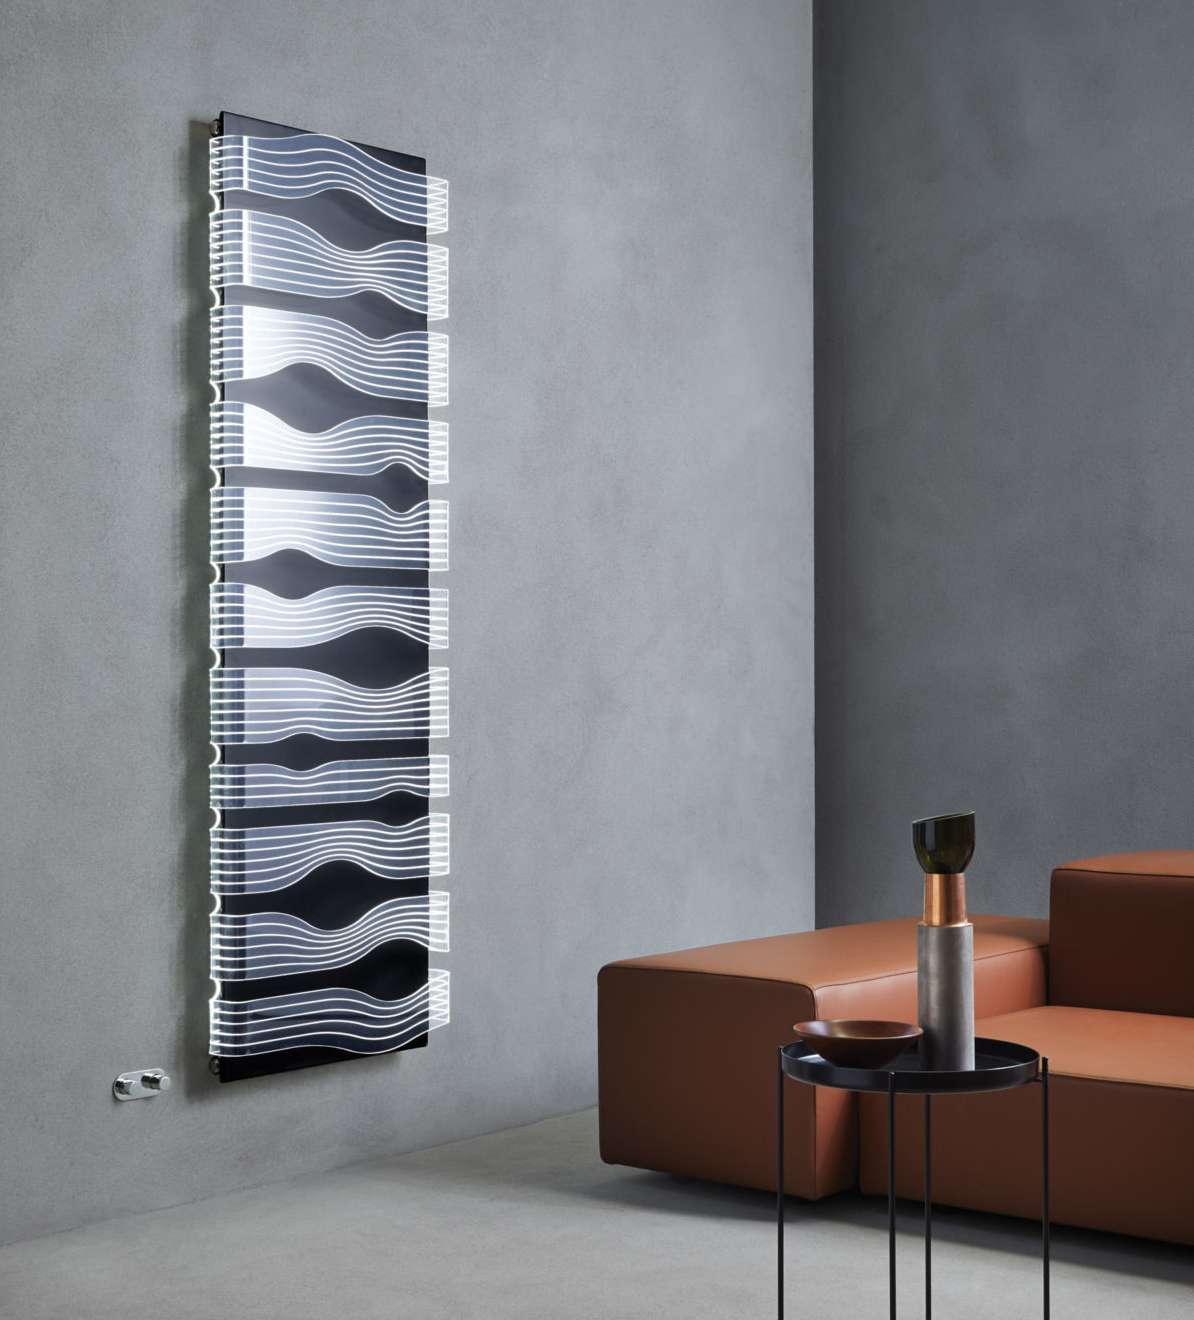 Wall heater faced with LED back lit acrylic panels